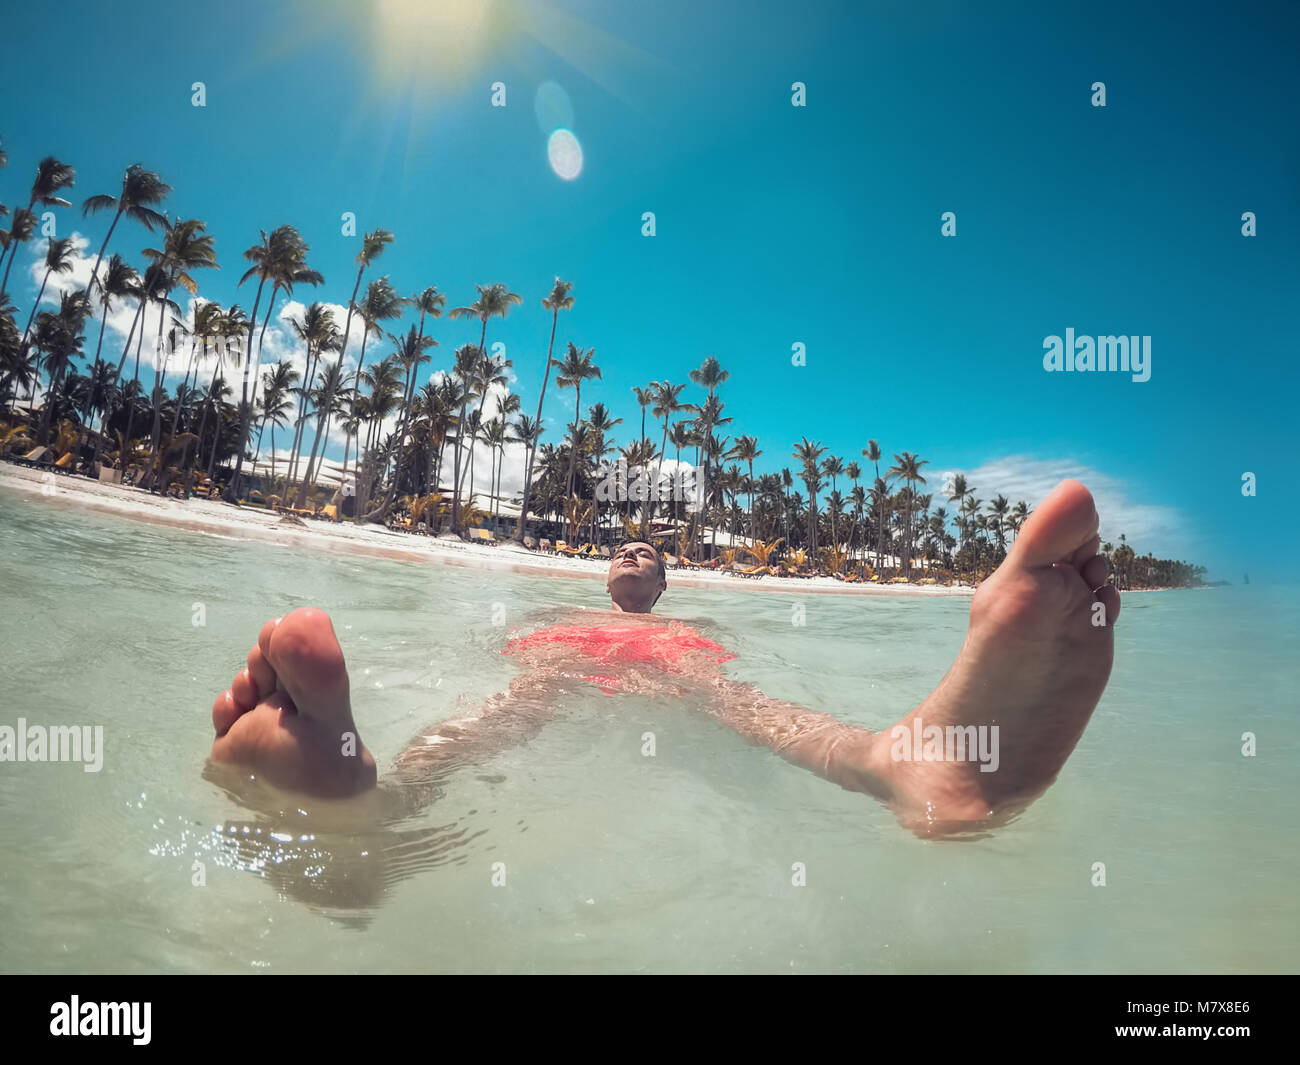 Man enjoying his summer vacation, turquoise water of Caribbean sea and Punta Cana beach. - Stock Image